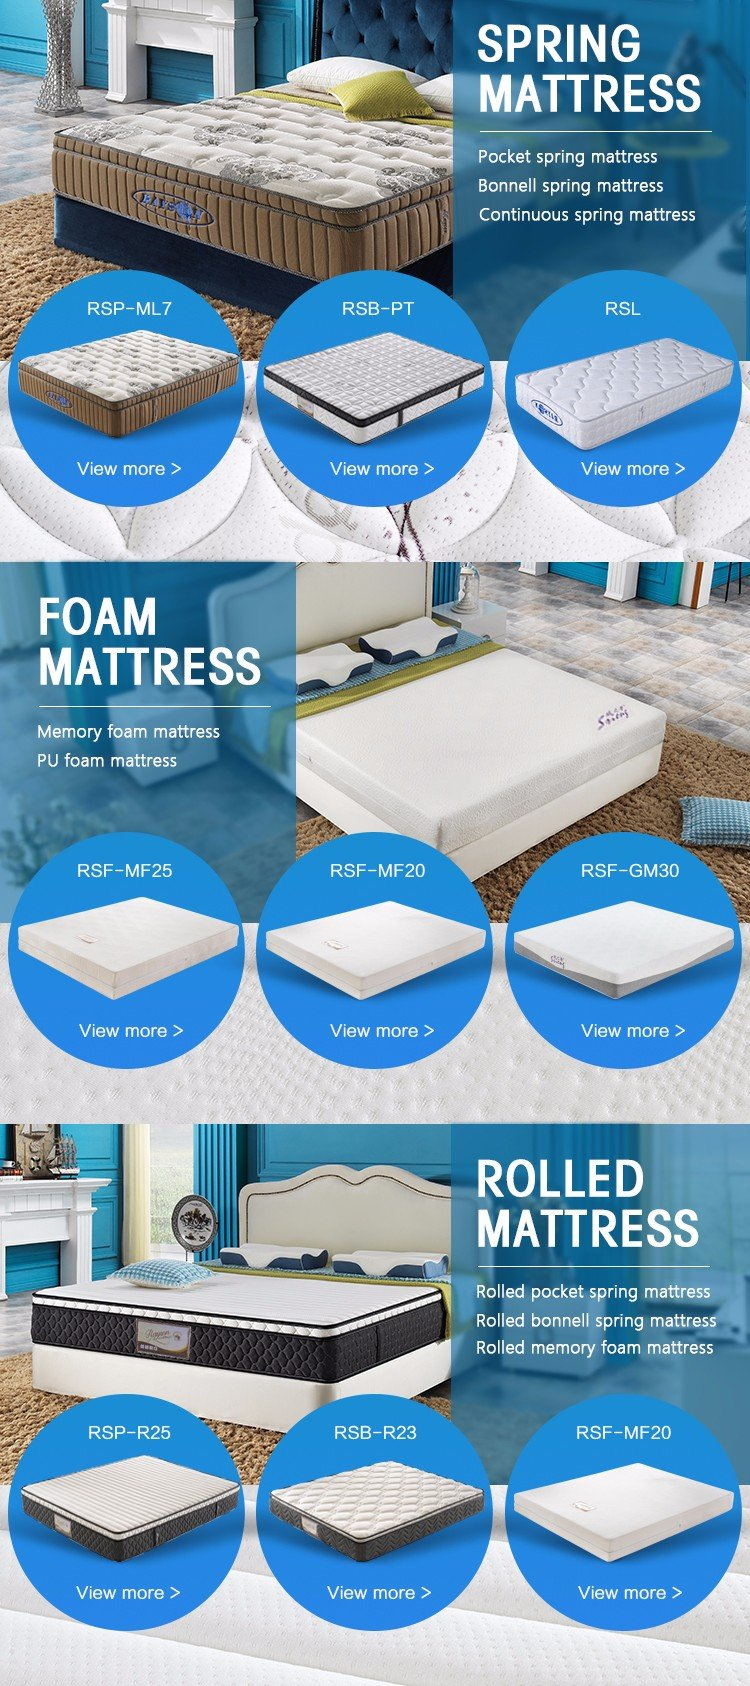 Rayson Mattress life european mattress sizes manufacturers-7